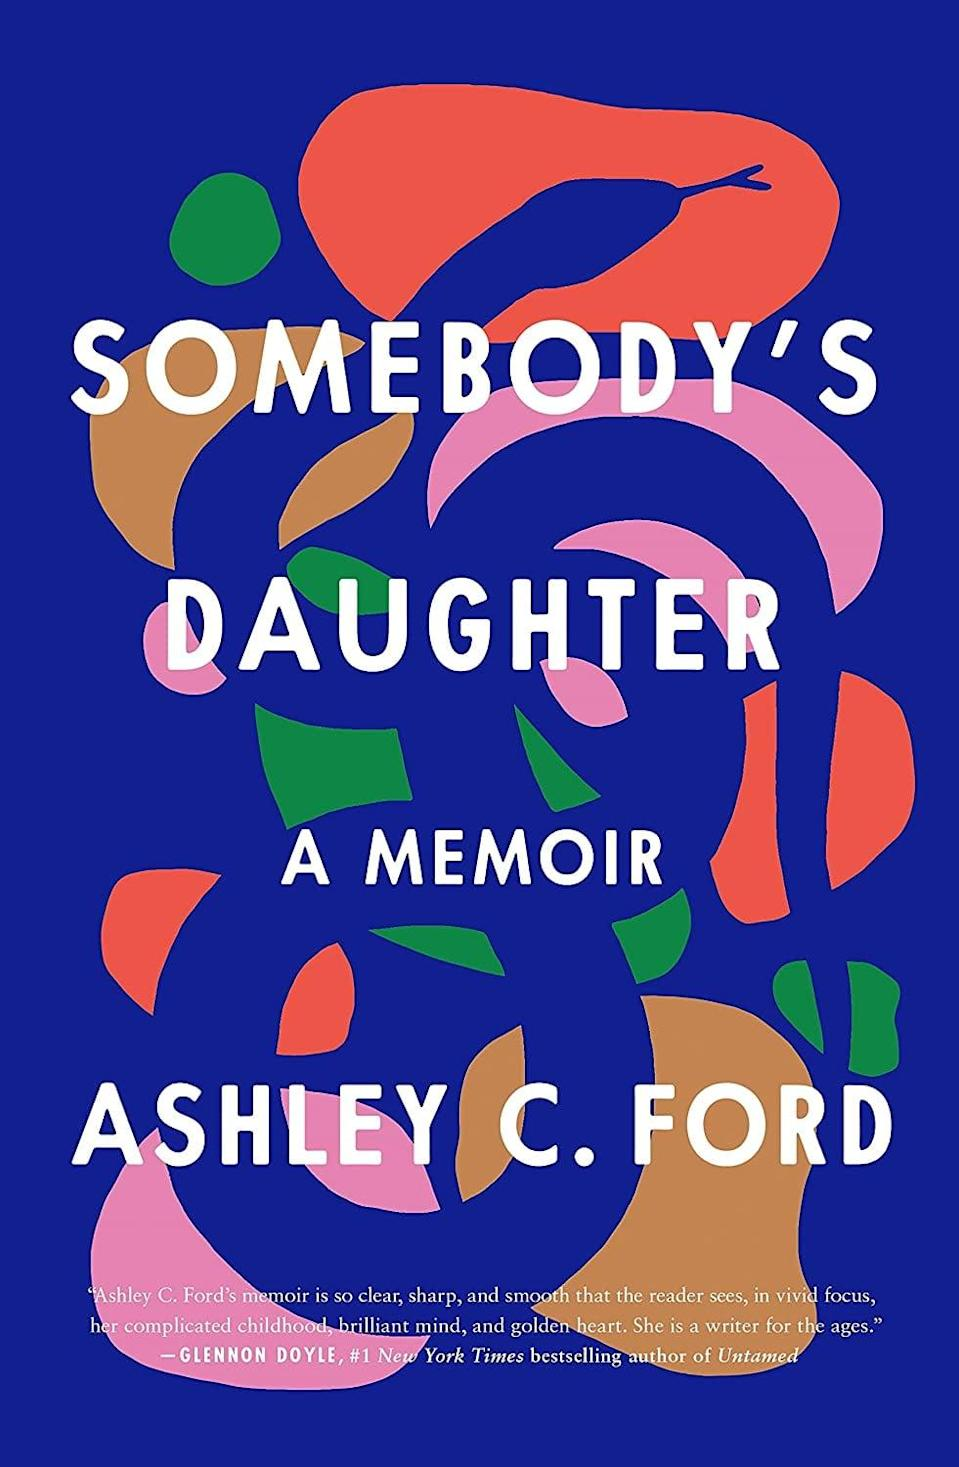 <p>In her debut memoir, <span><strong>Somebody's Daughter</strong></span>, Ashley C. Ford shares the most intimate details of how her childhood and young adulthood were impacted by the incarceration of father. From growing up in poverty to her complex relationship with her mother, Ford's memoir is an unflinching, heartbreaking look at the impact a family member's incarceration can have on the family left behind. </p> <p><em>Out June 1</em></p>